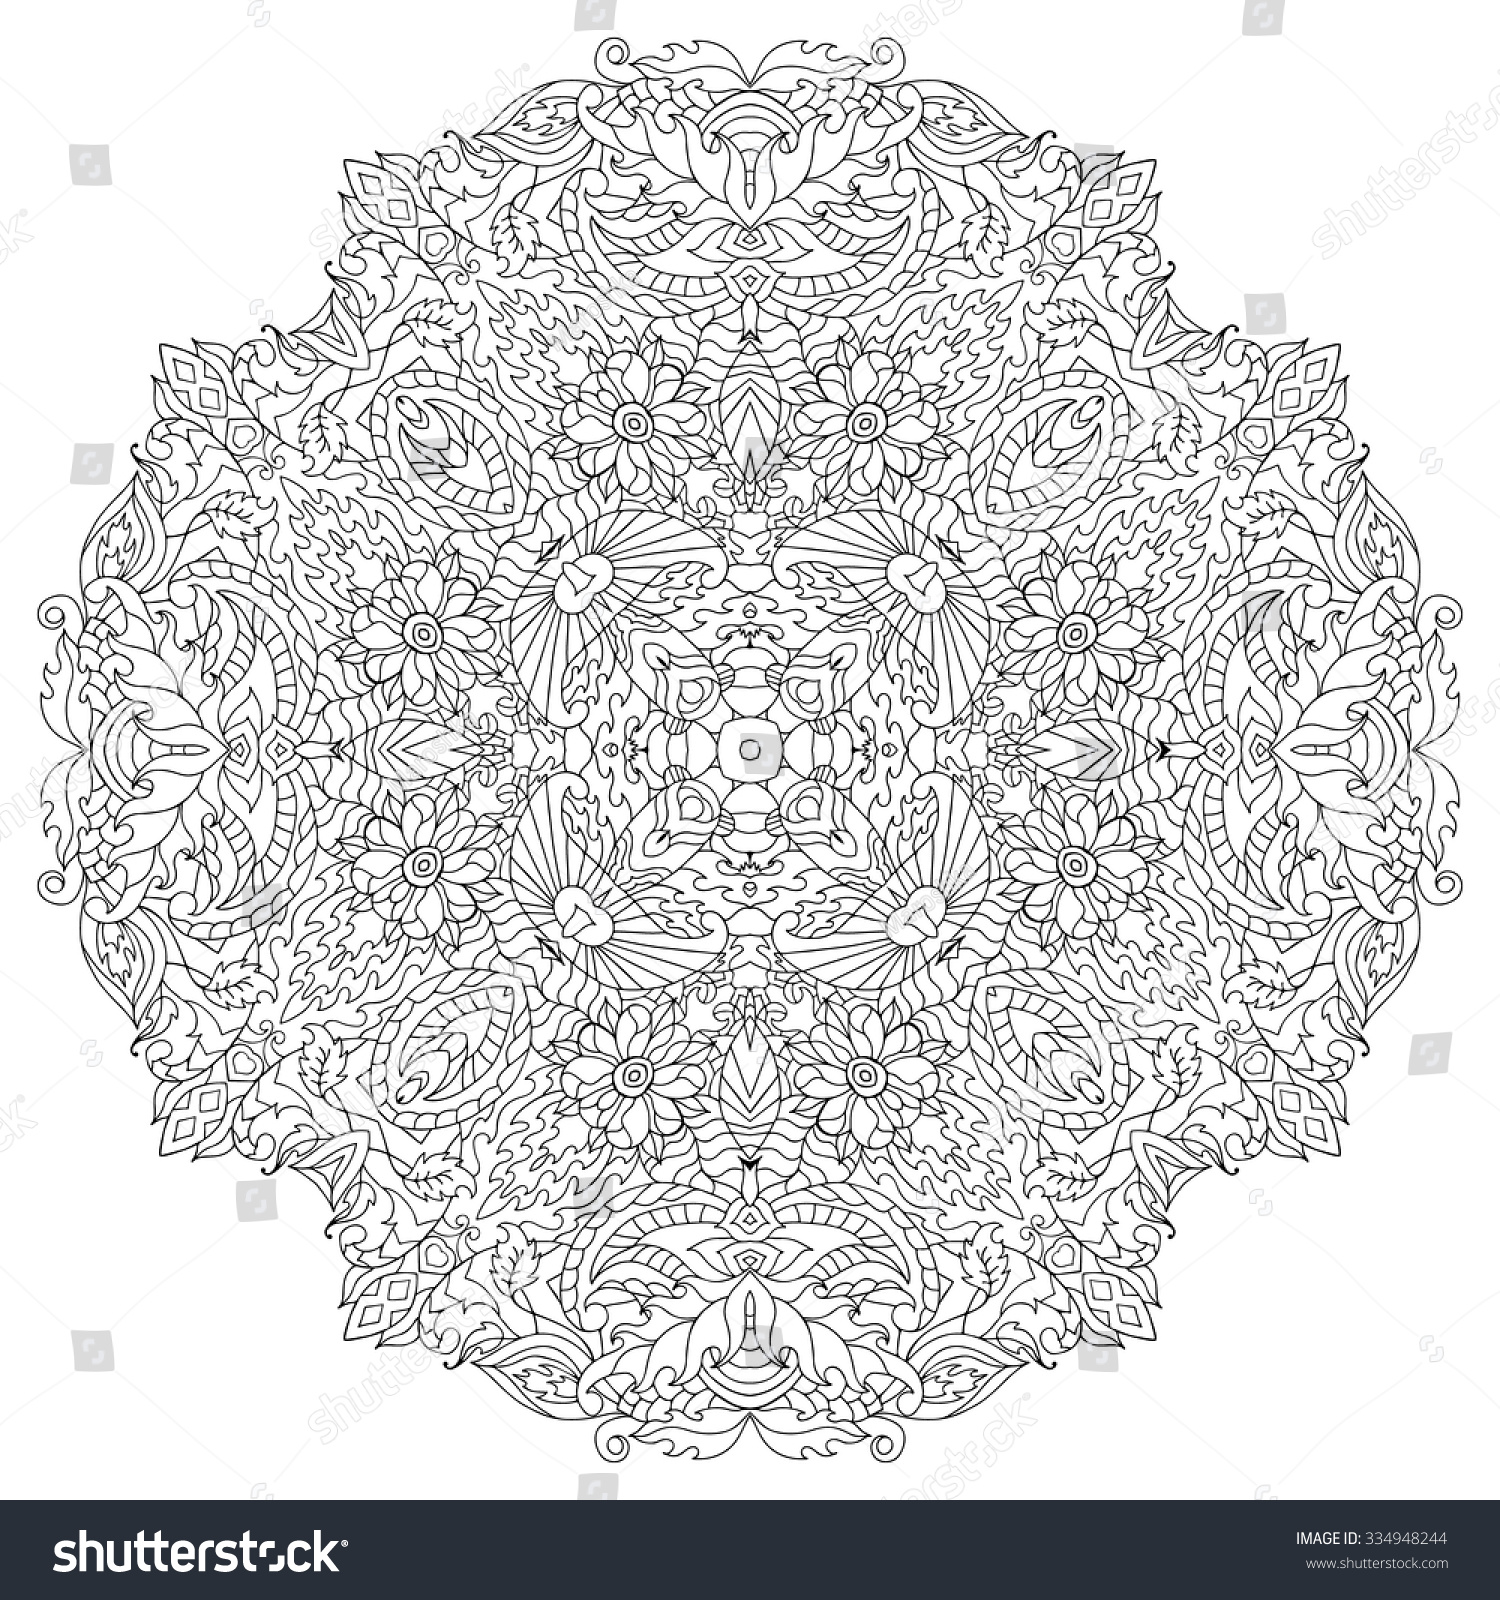 Zen coloring flowers - Anti Stress Colouring Online Zen Flower Coloring Pages Zen Flower Coloring Pages Stress Coloring Flowers